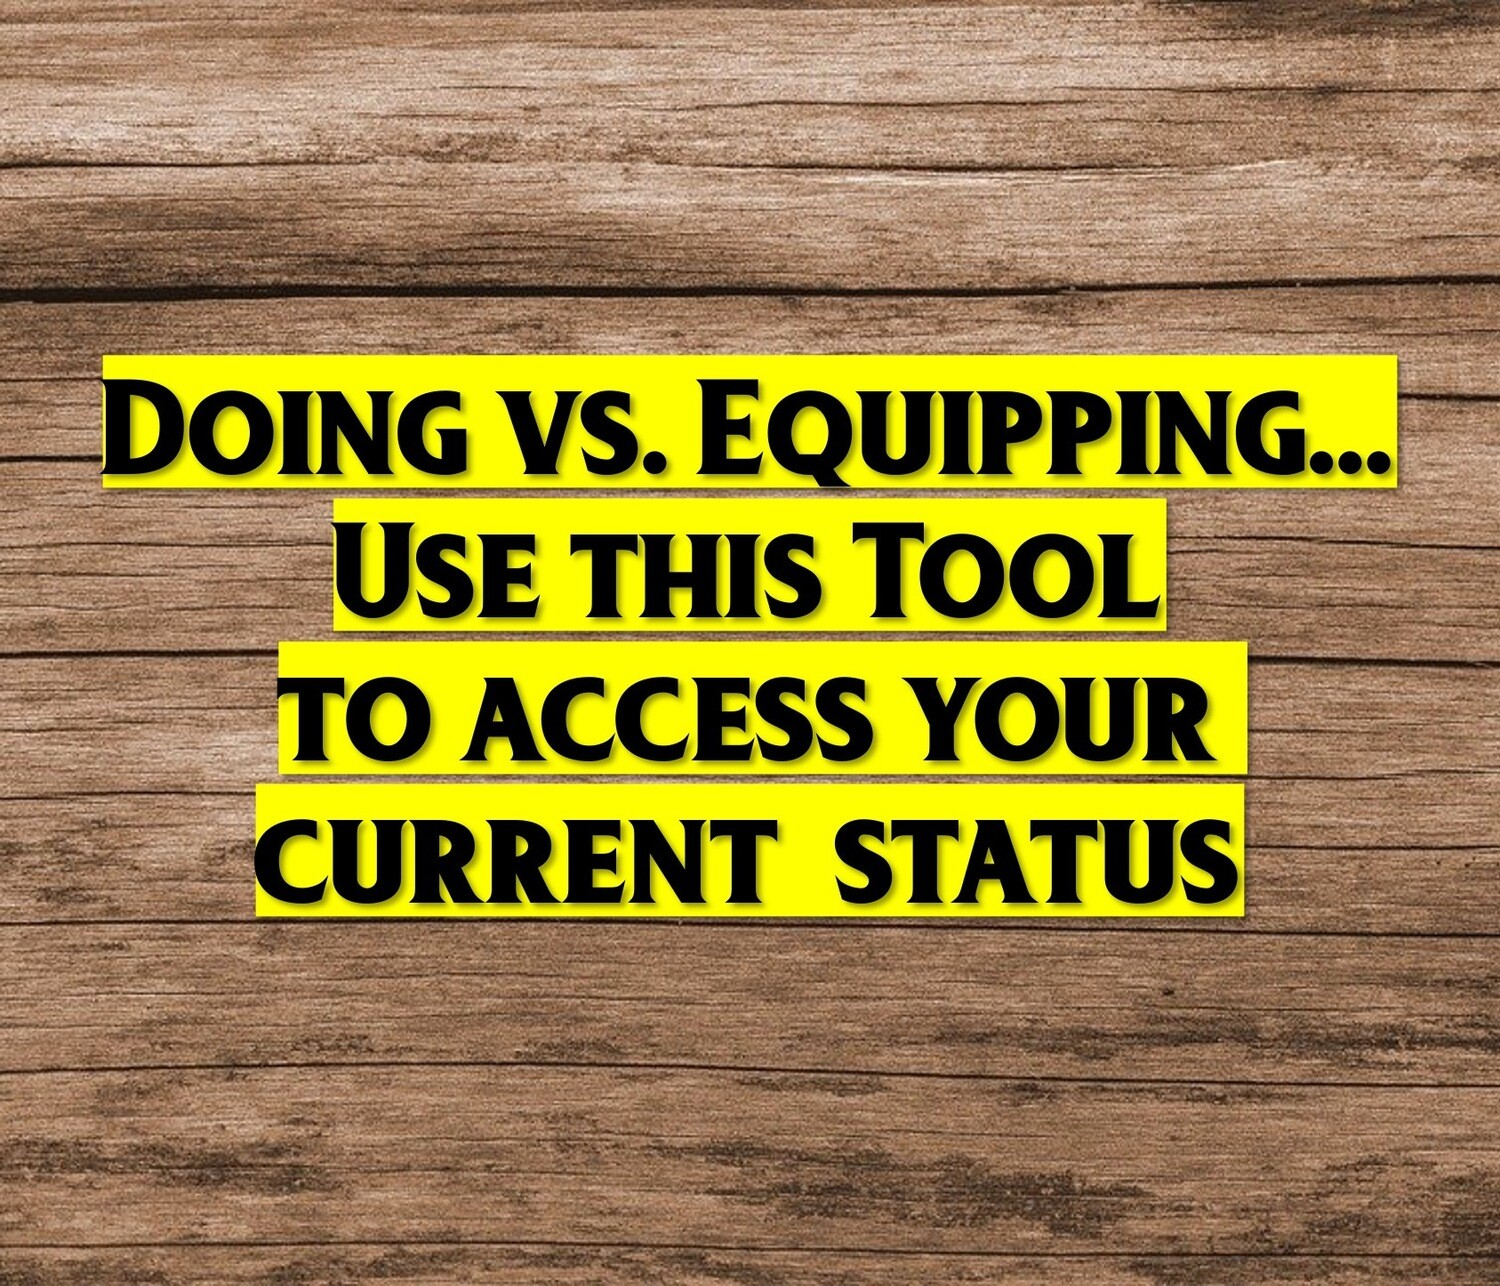 Doing vs. Equipping Tool